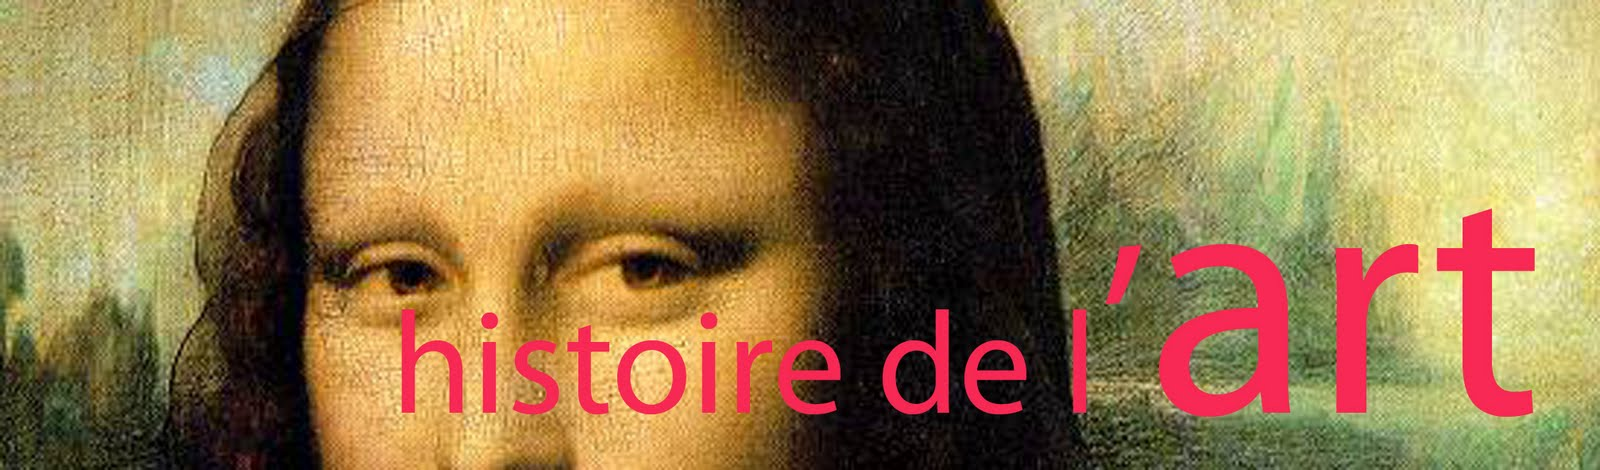 histoire des arts